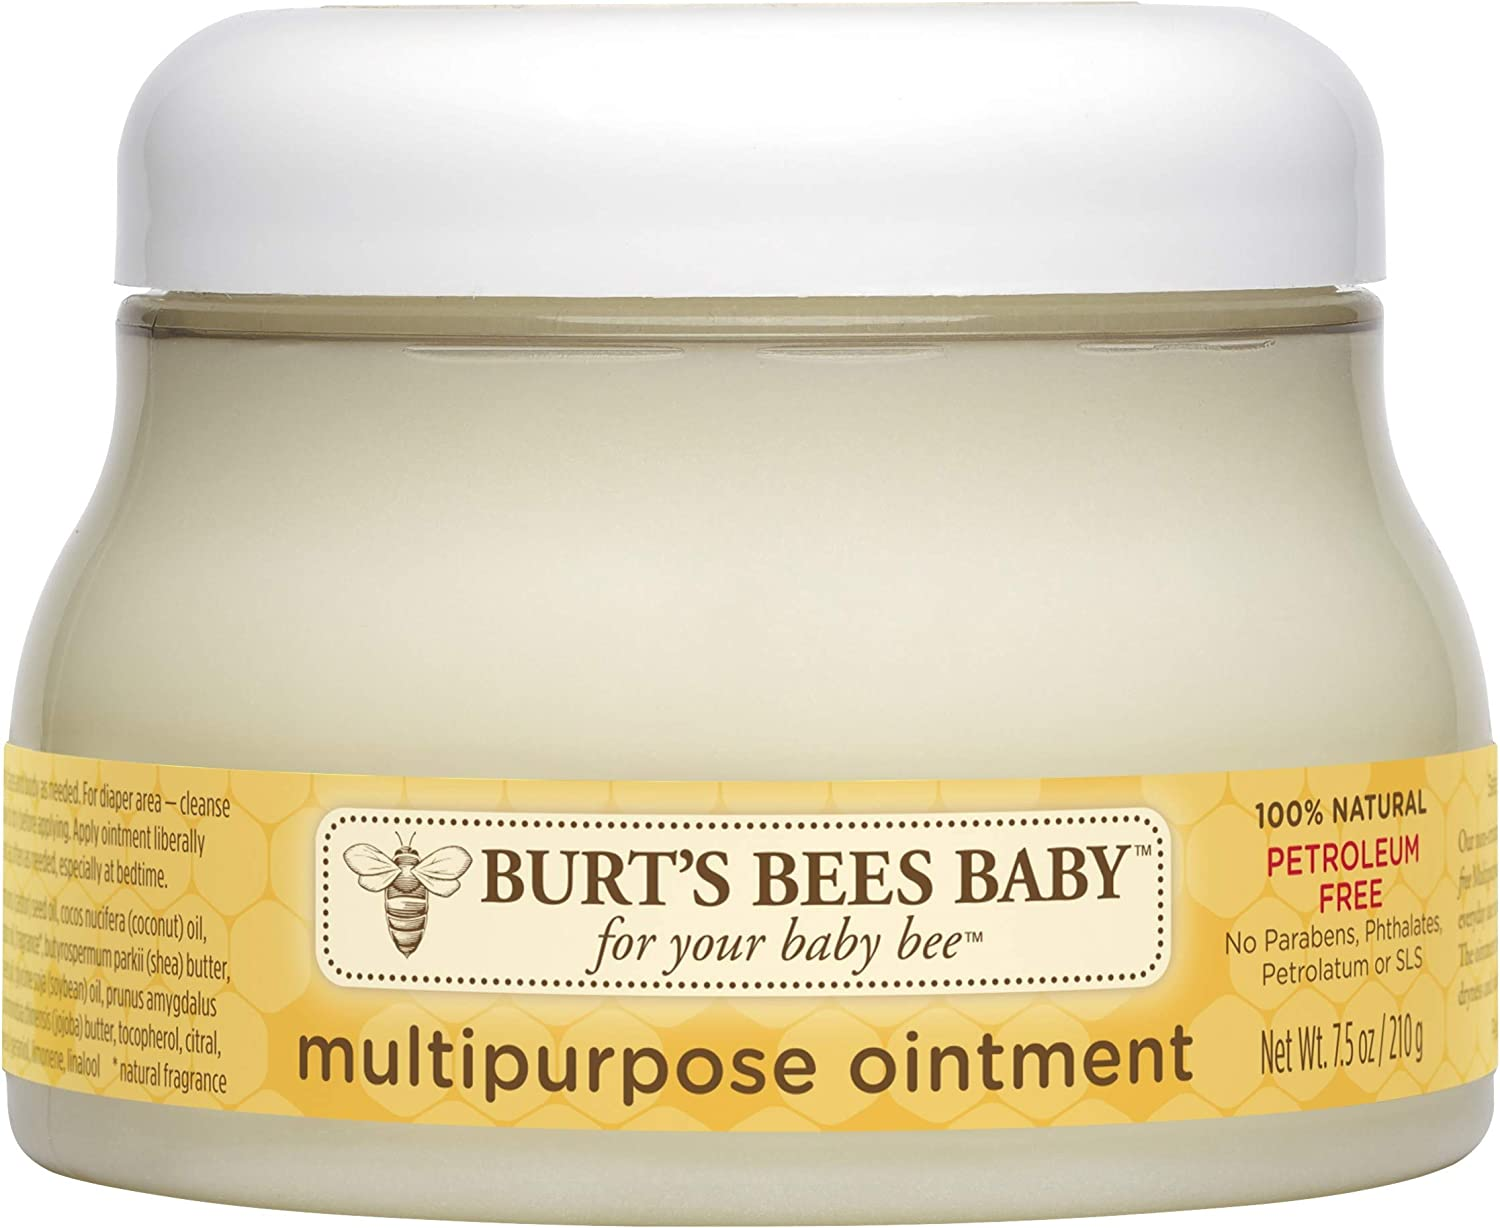 Burt's Bees Baby 100% Natural Multipurpose Ointment, Face & Body Baby Ointment – 7.5 Ounce Tub: Health & Personal Care